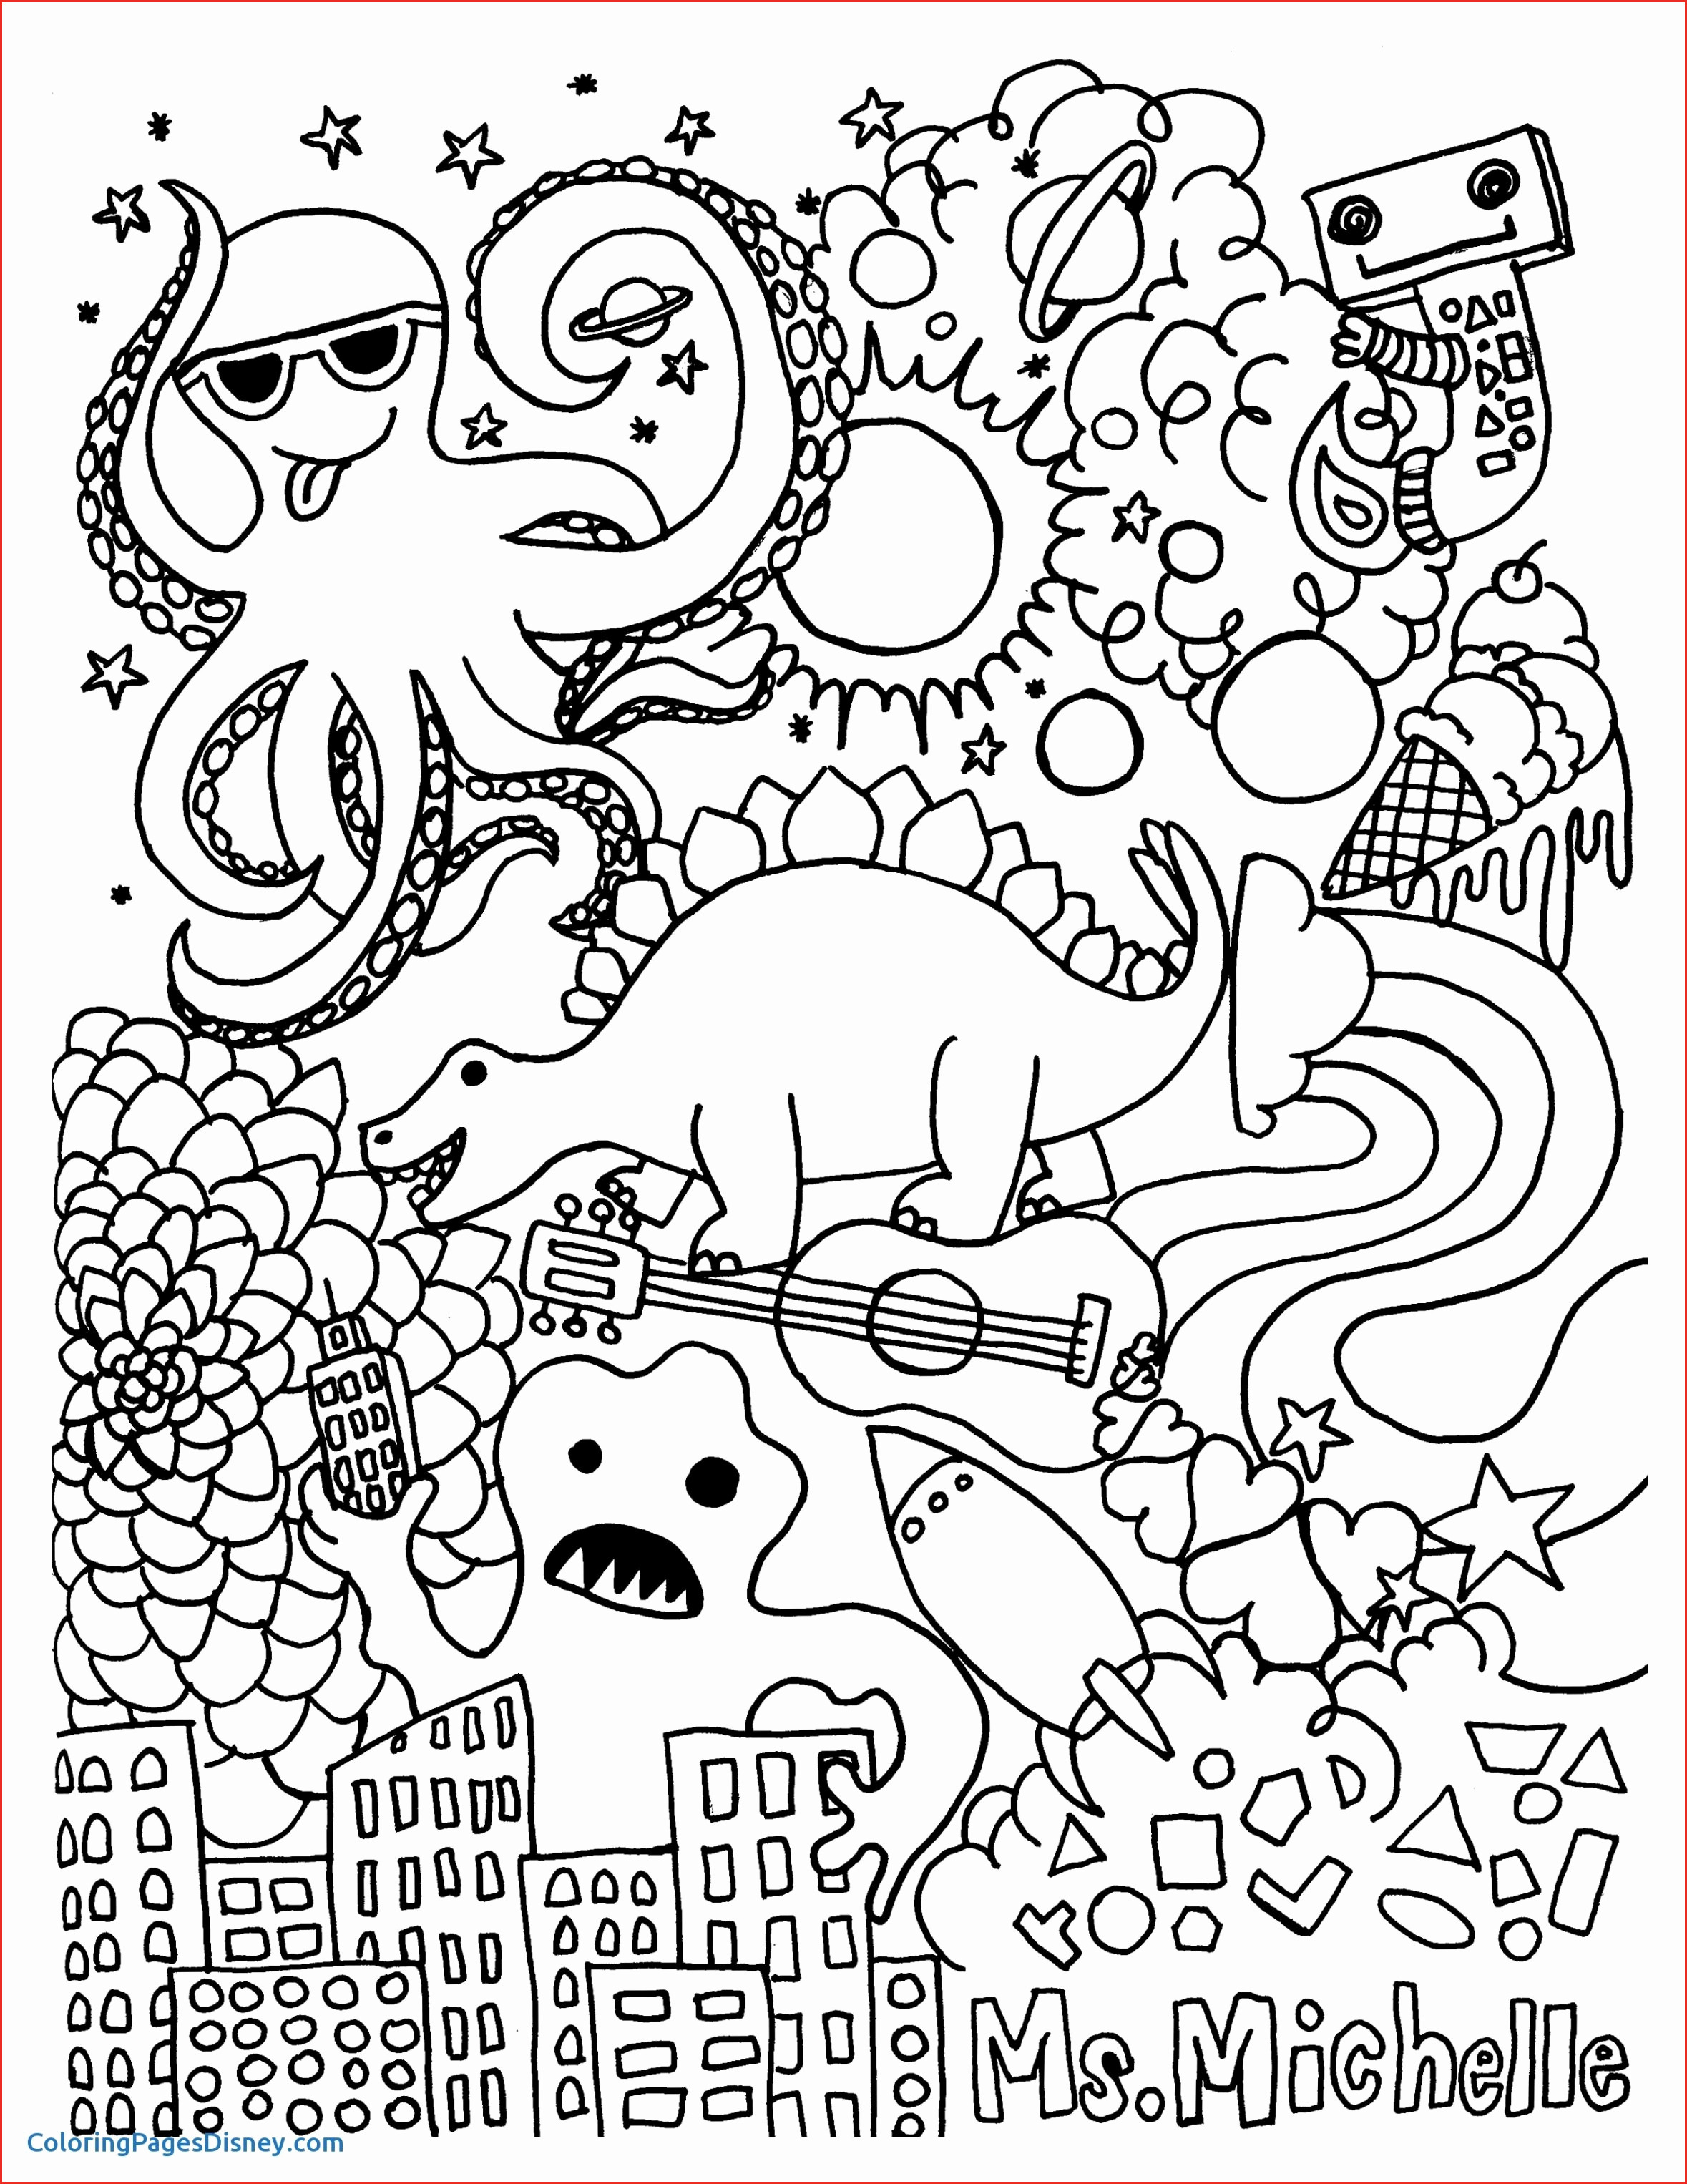 Jesus Storybook Bible Coloring Pages  to Print 6i - Free For Children